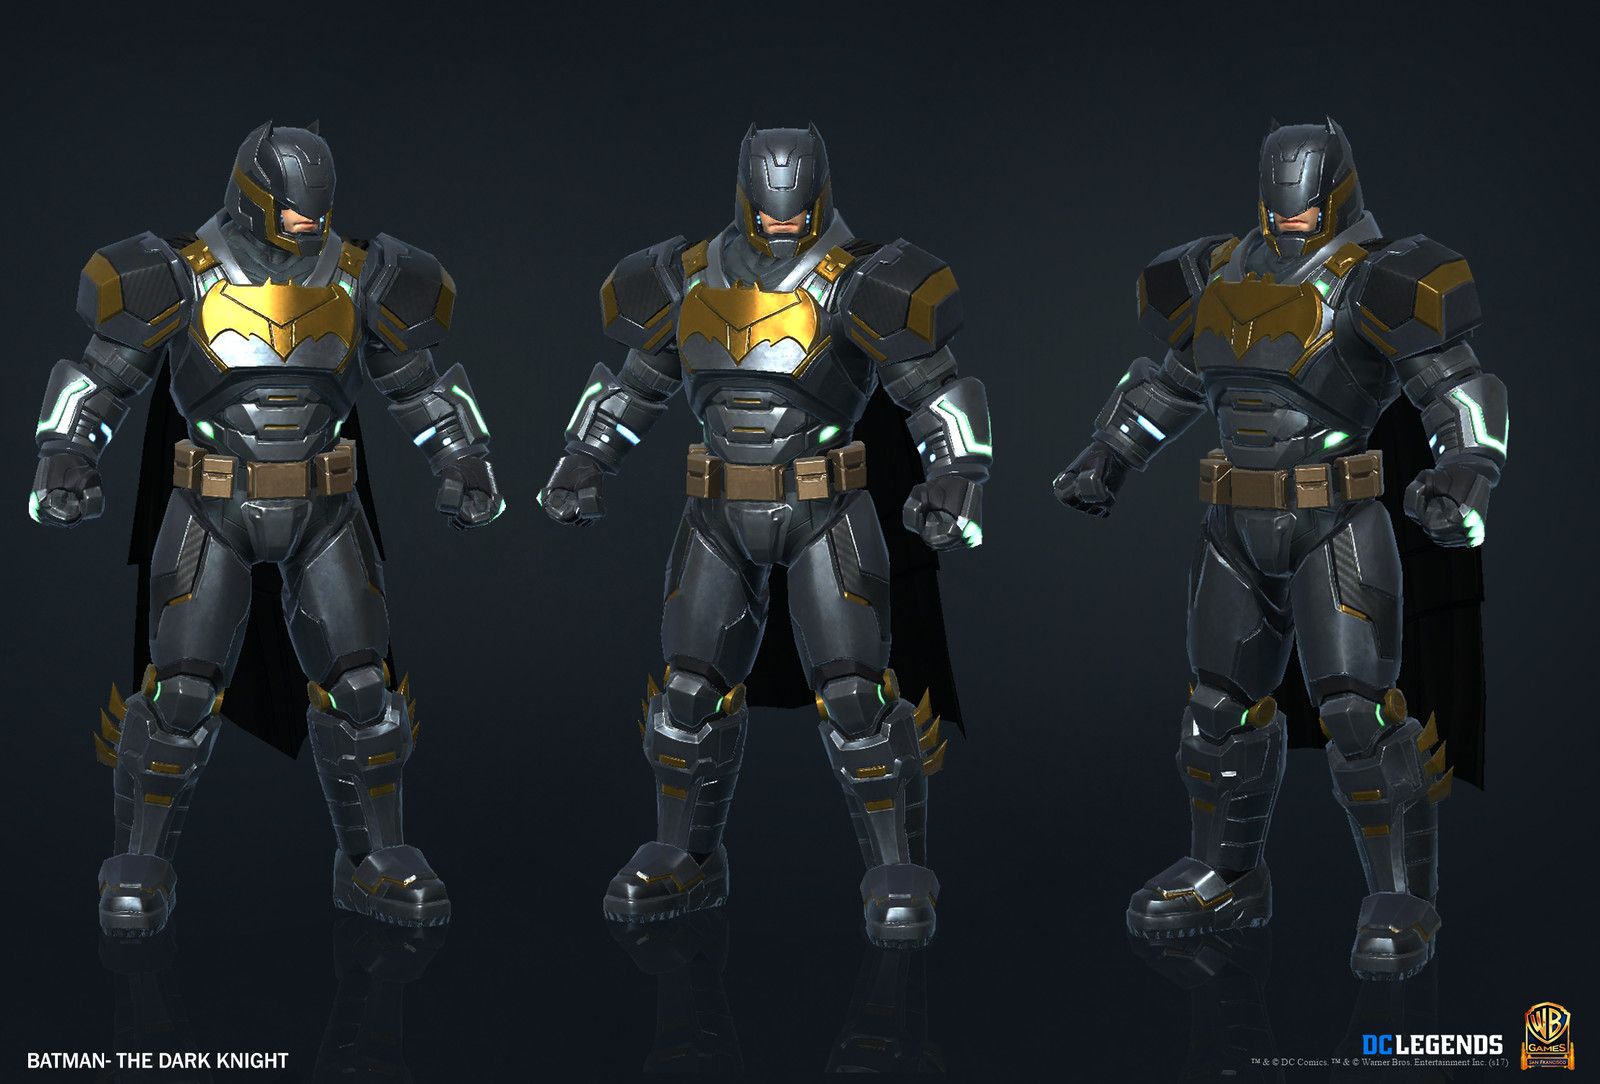 Batman The Dark Knight Legendary High Poly, Low Poly and Textures/Material work done by me.